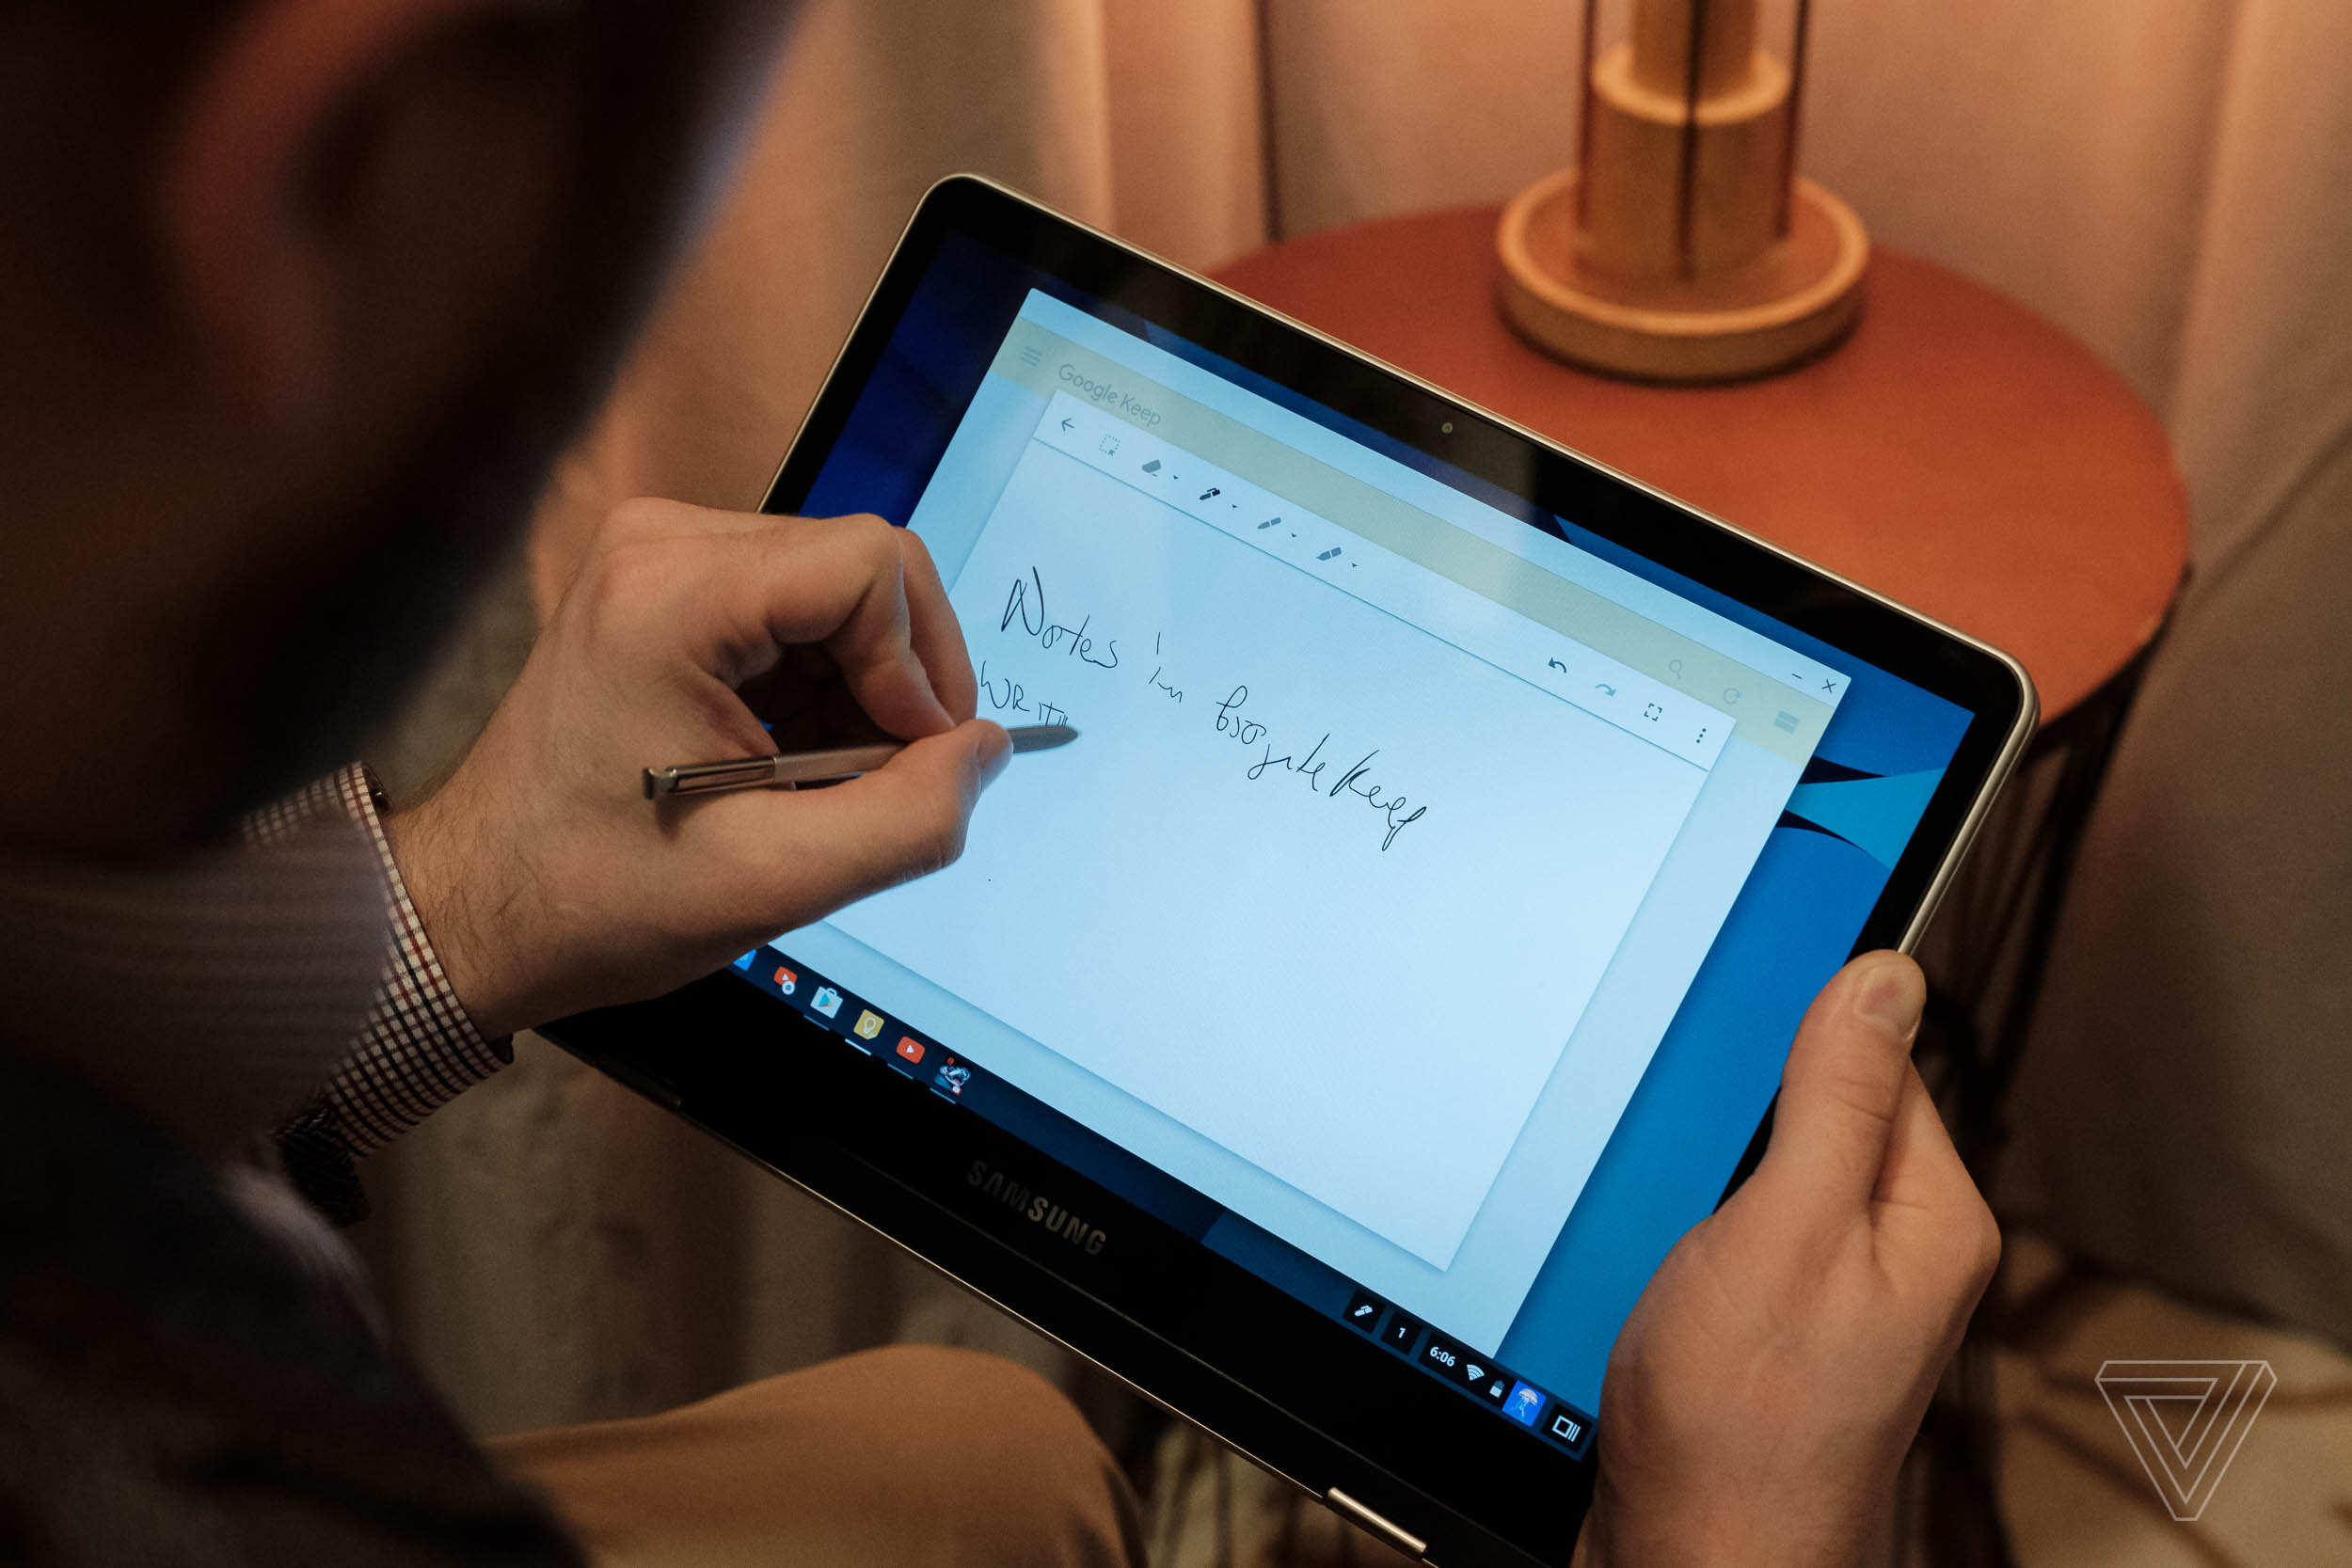 Samsung's new Chromebooks are Google's answer to the iPad Pro and